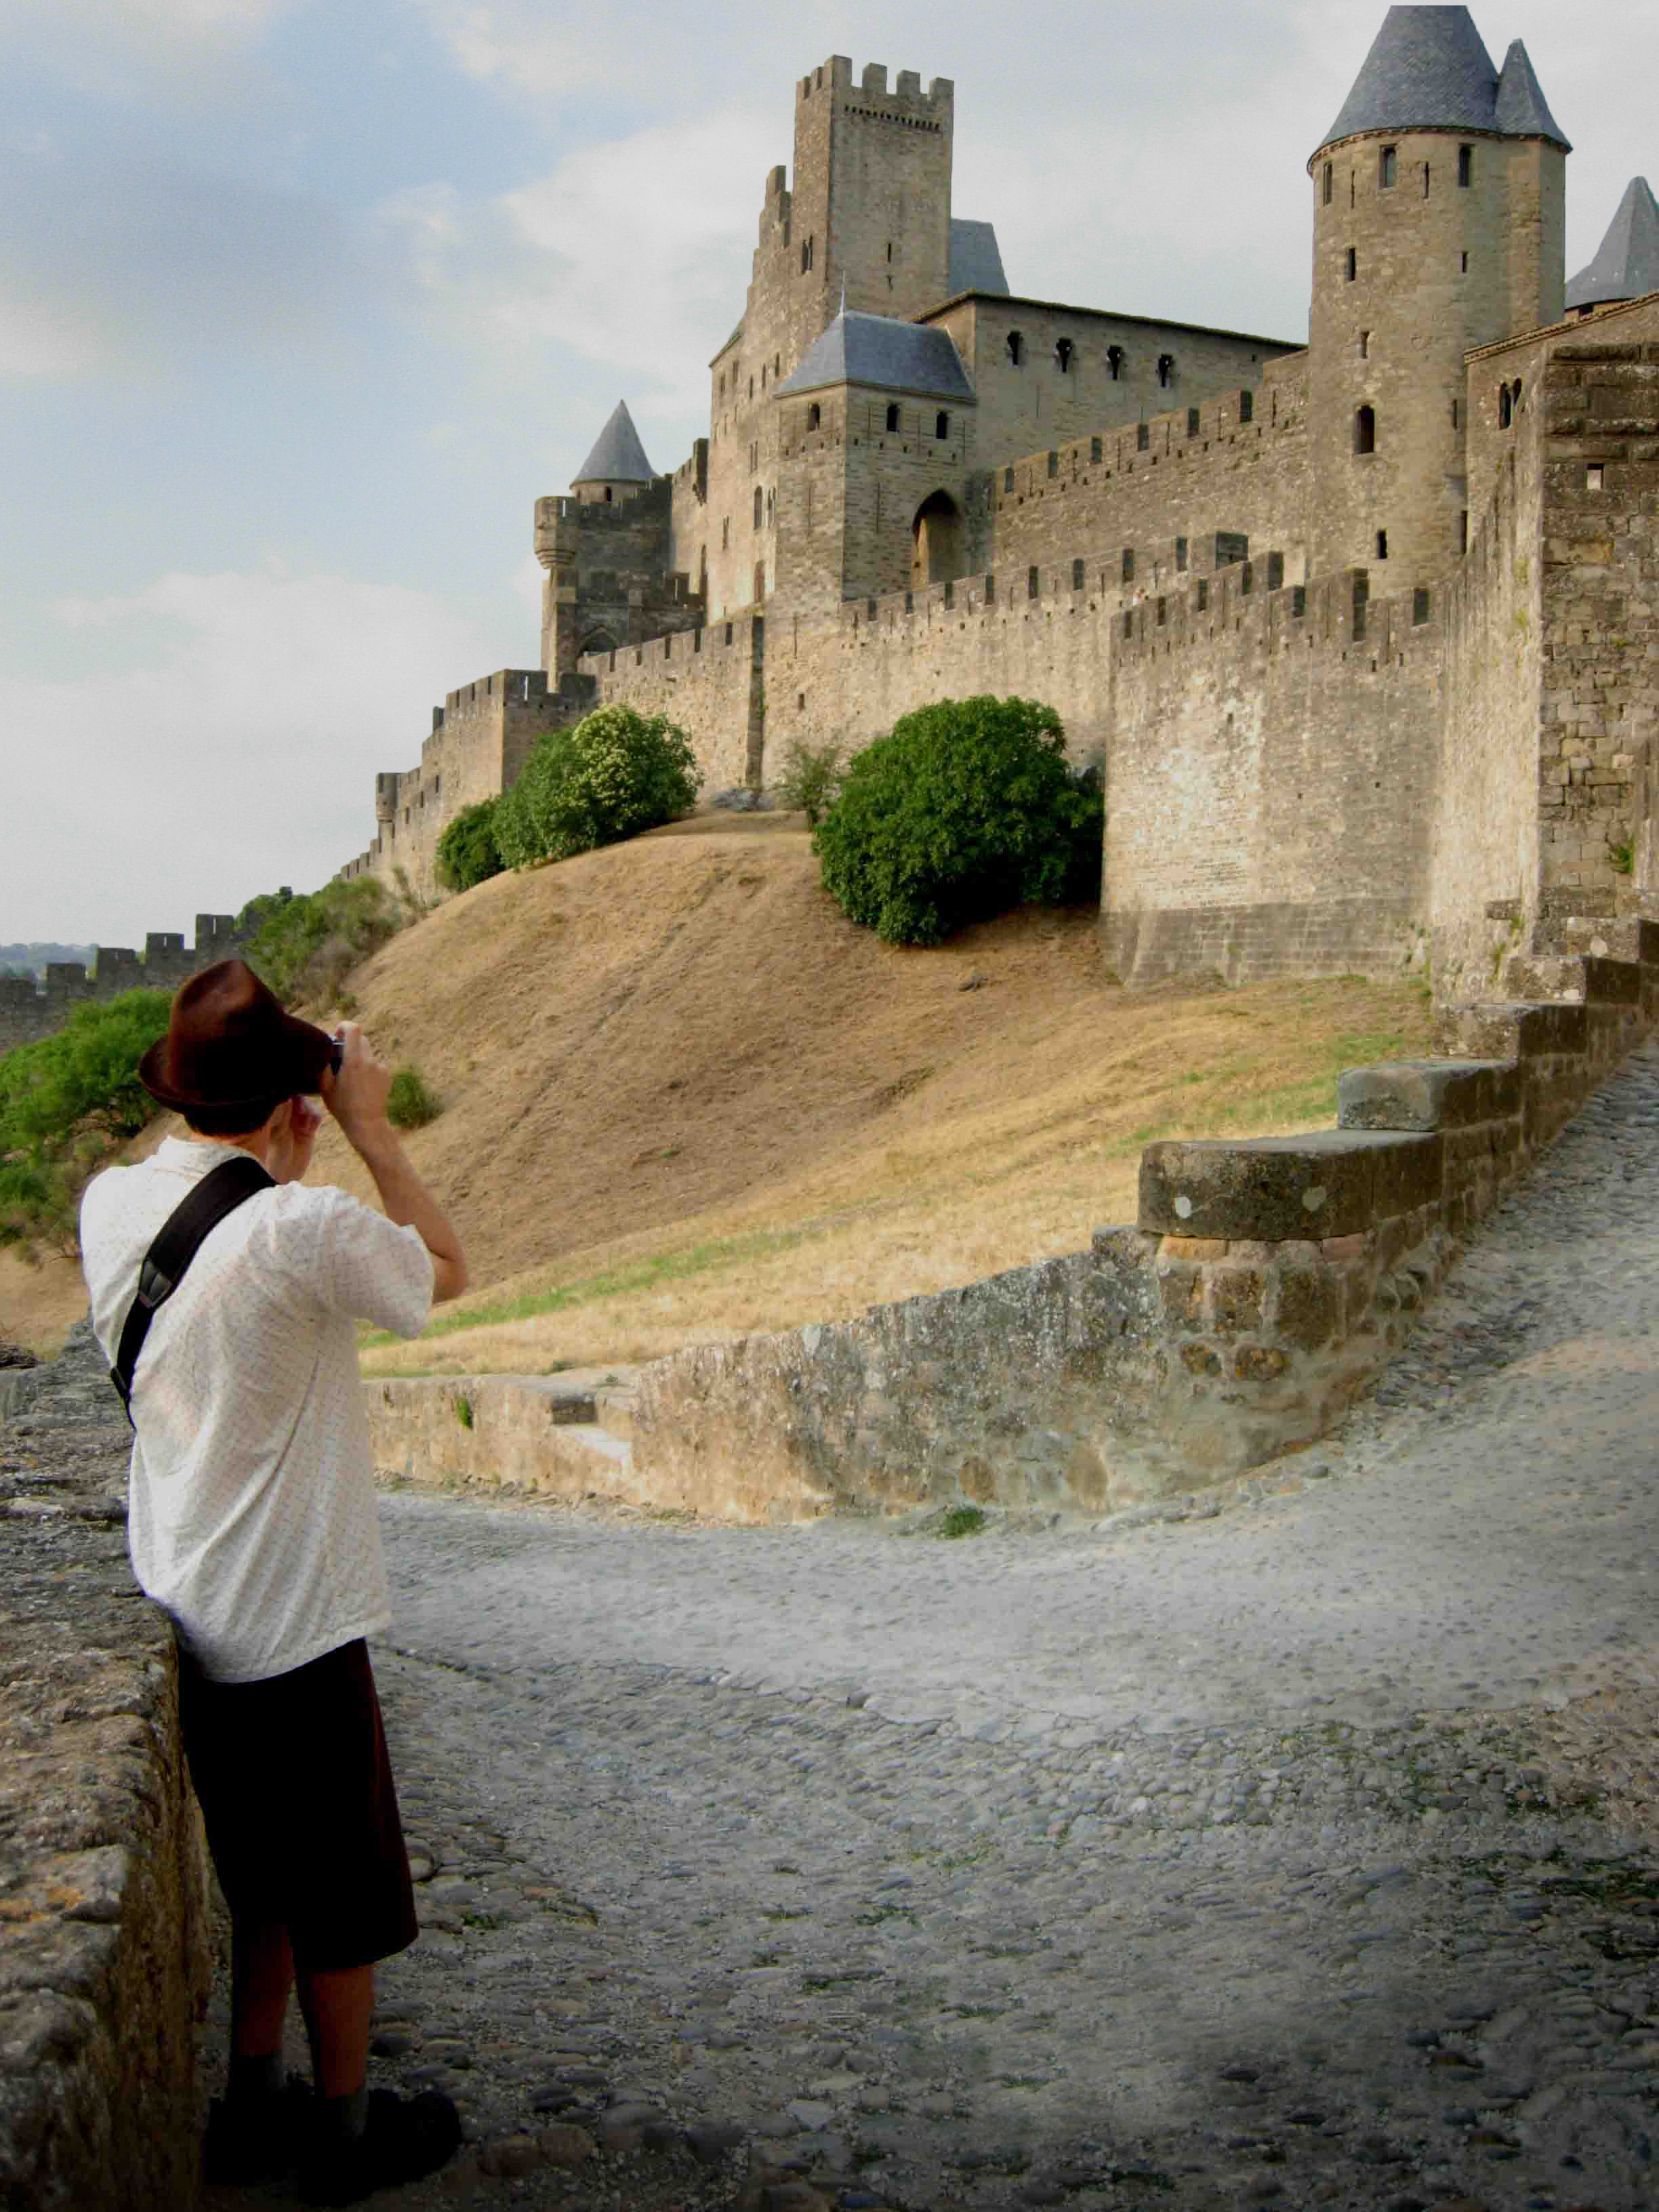 Jeffrey at Carcassonne